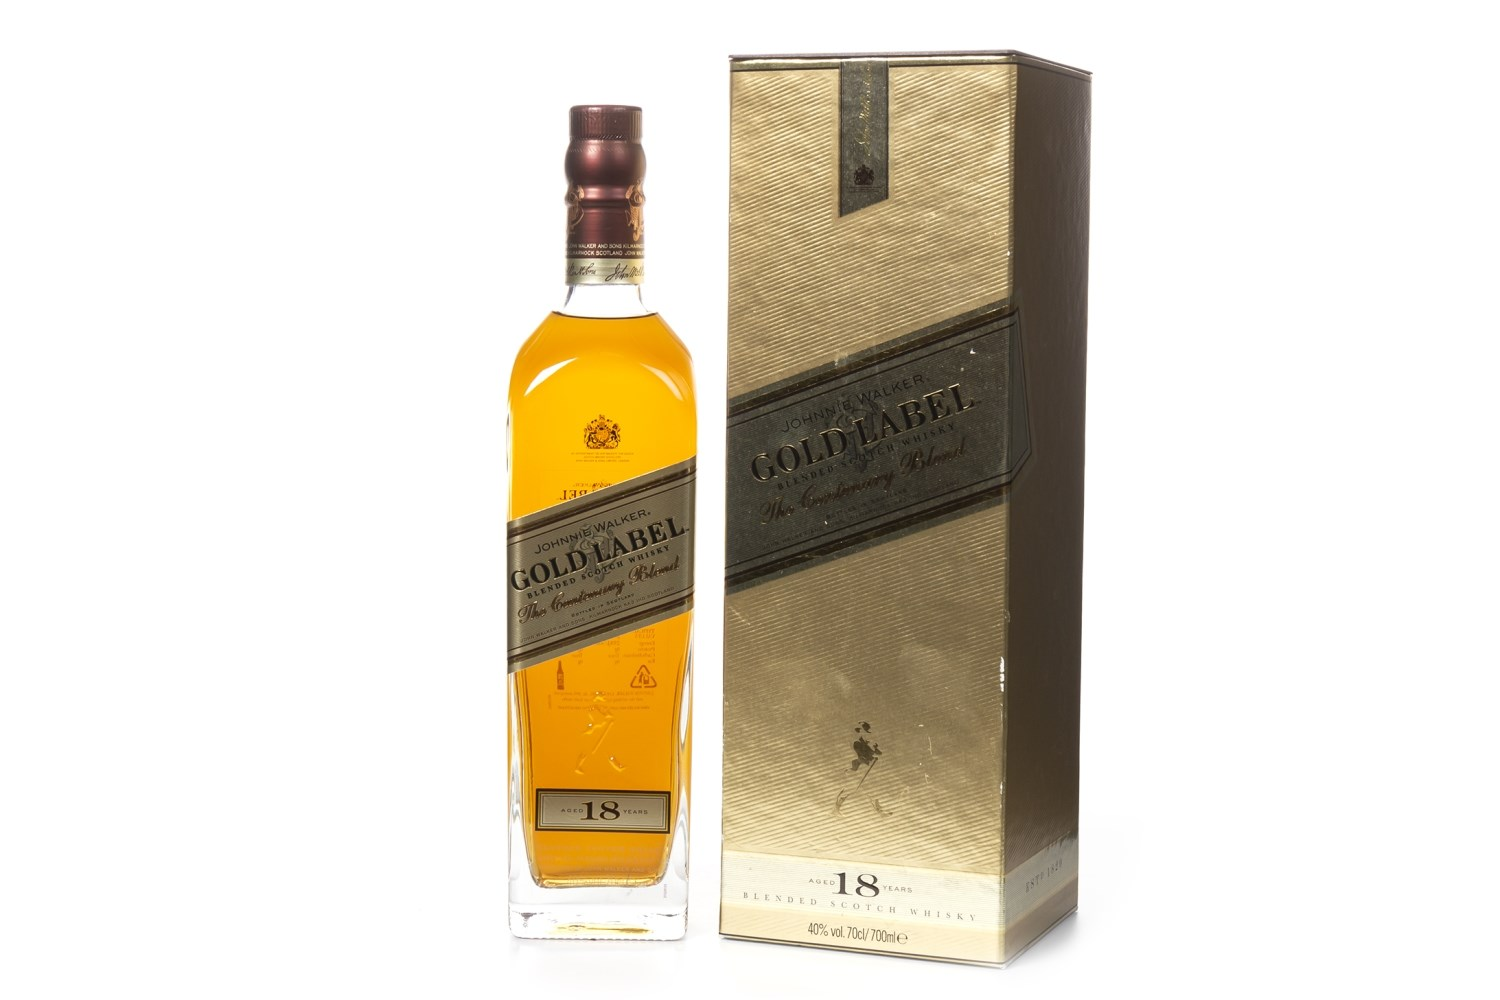 Lot 1041 - JOHNNIE WALKER GOLD LABEL AGED 18 YEARS